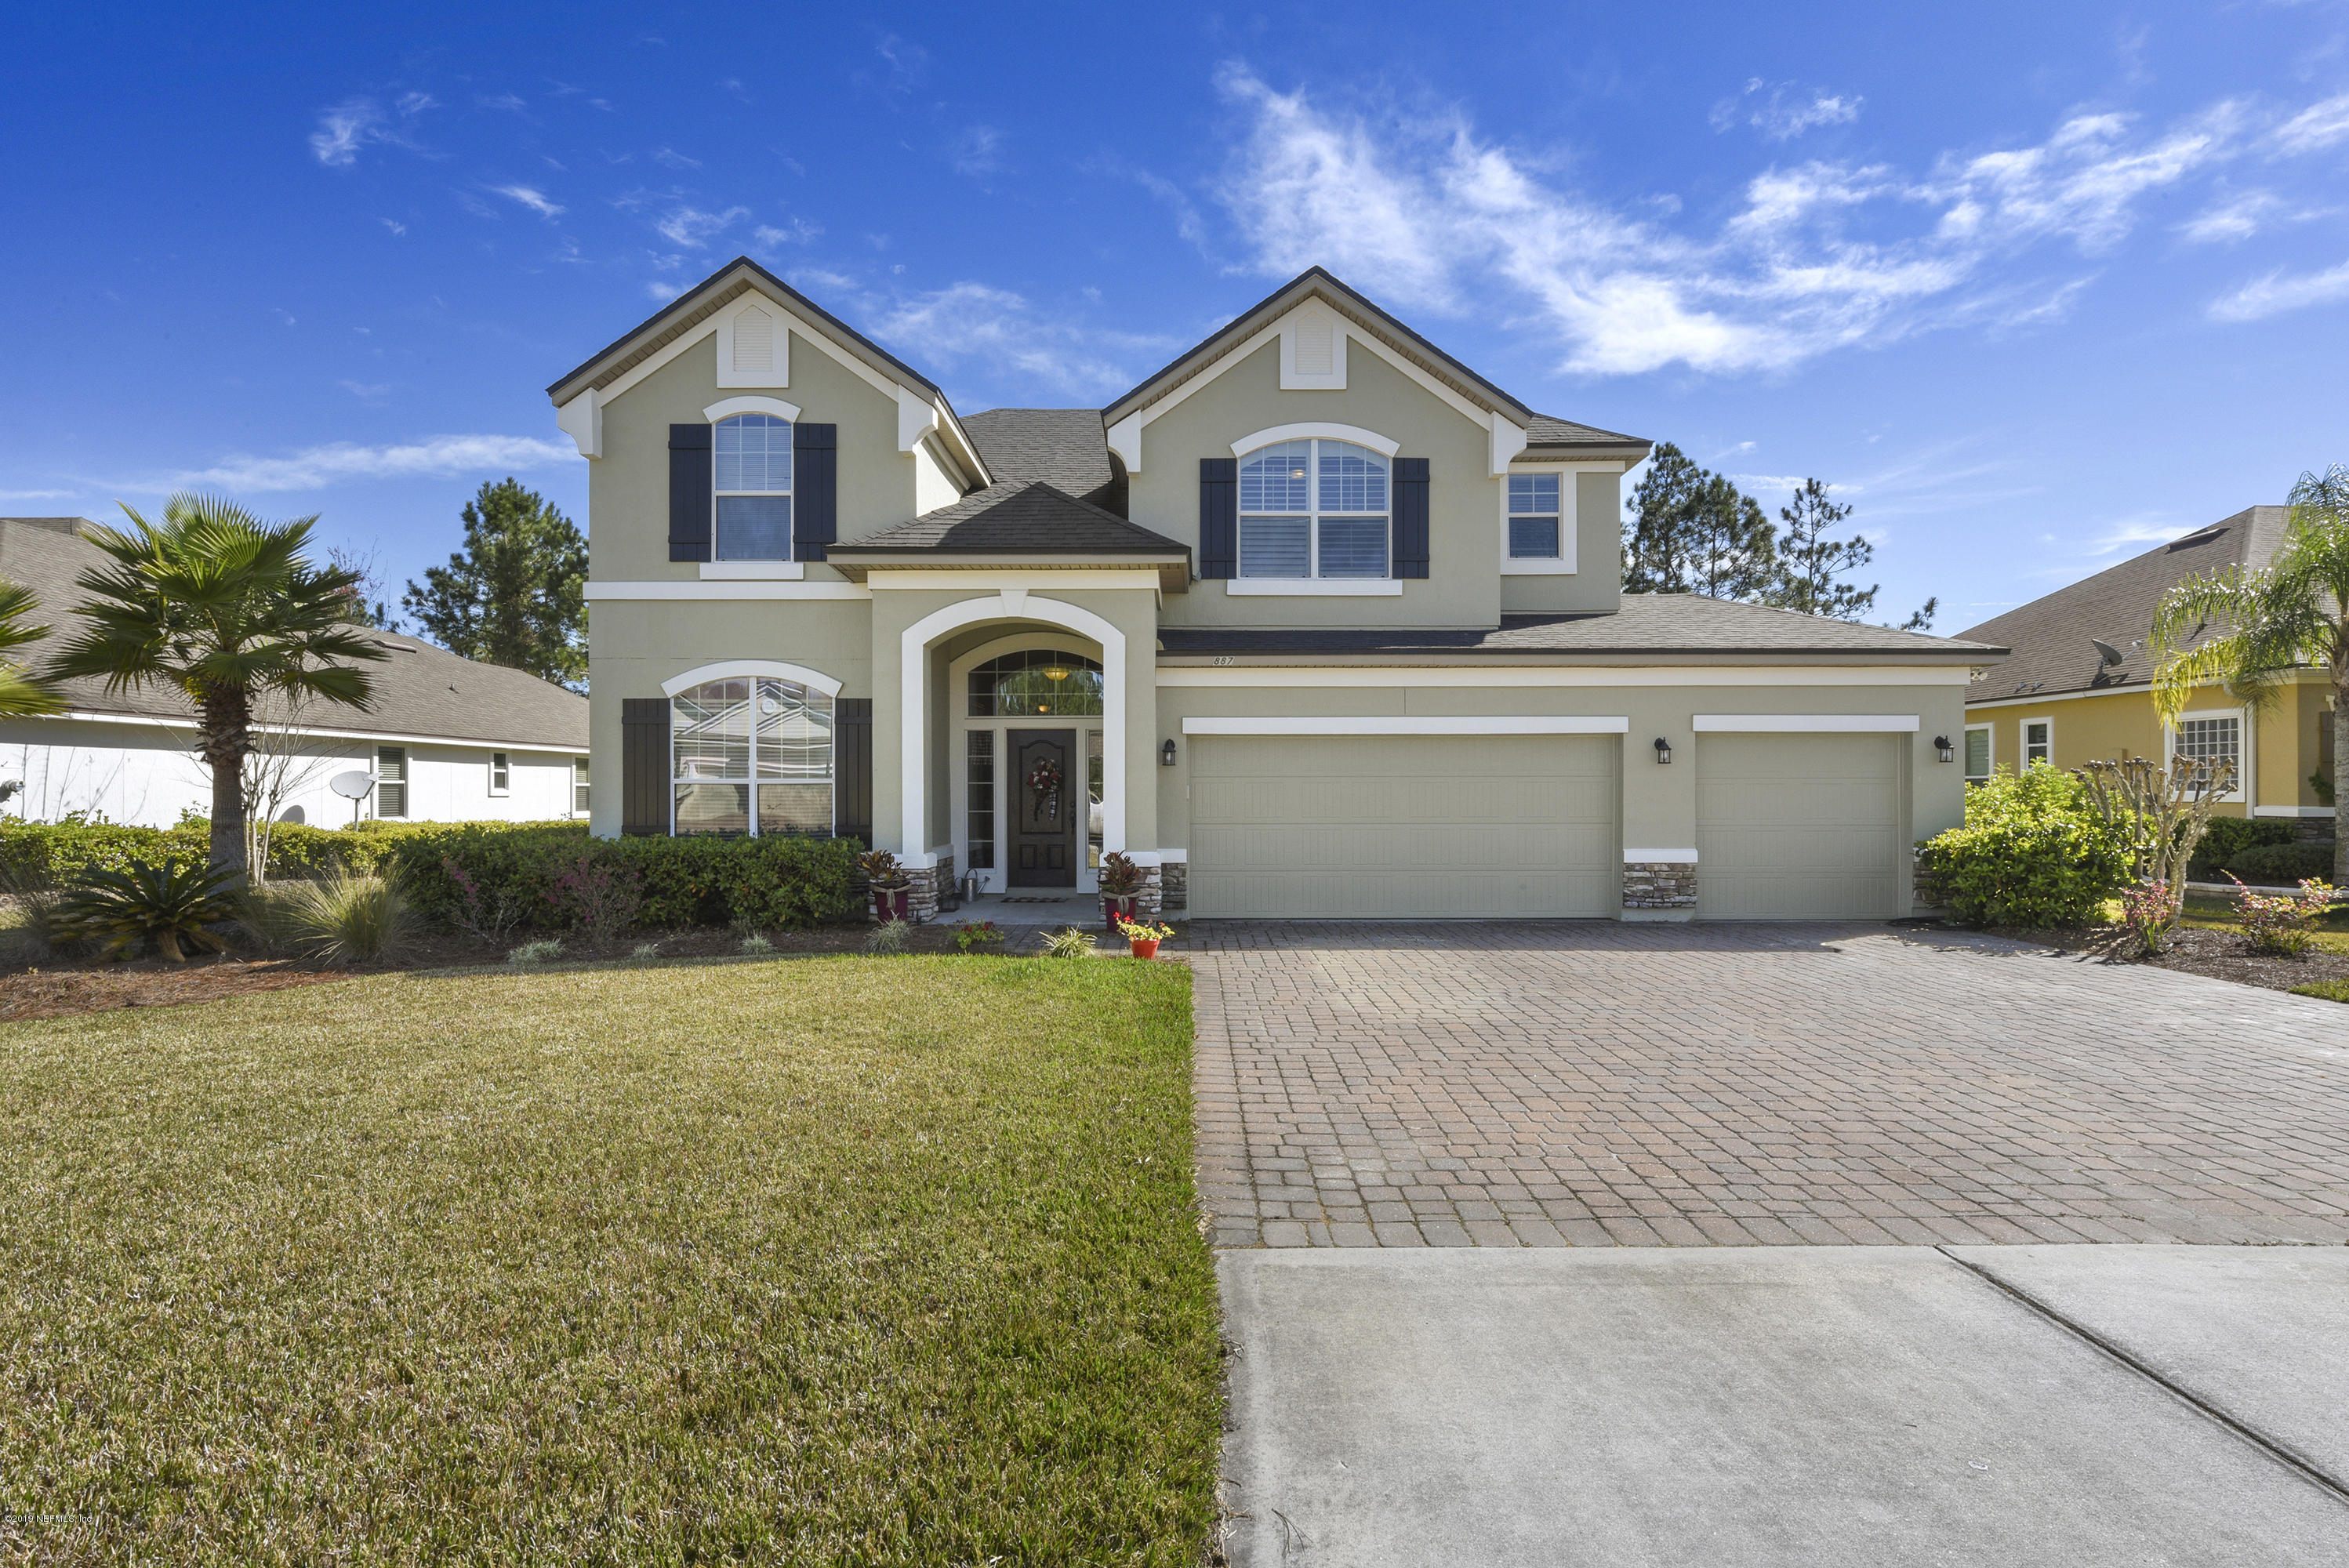 887  NOTTAGE HILL ST, Julington Creek in ST. JOHNS County, FL 32259 Home for Sale